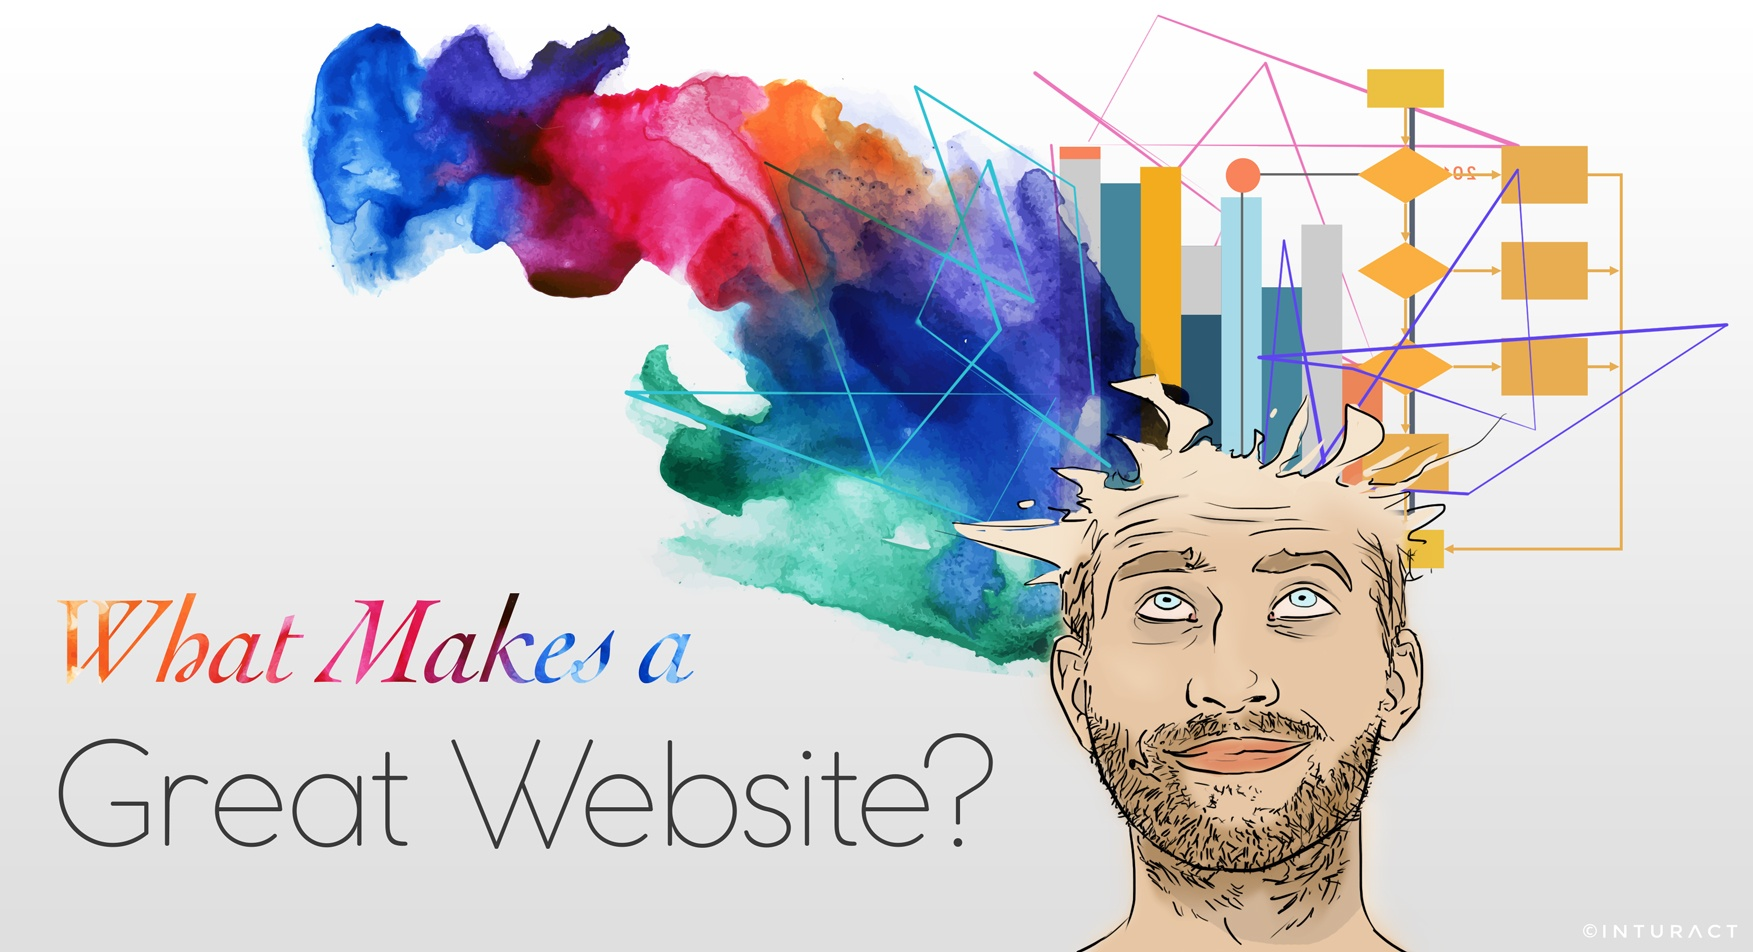 What Makes a Great Website